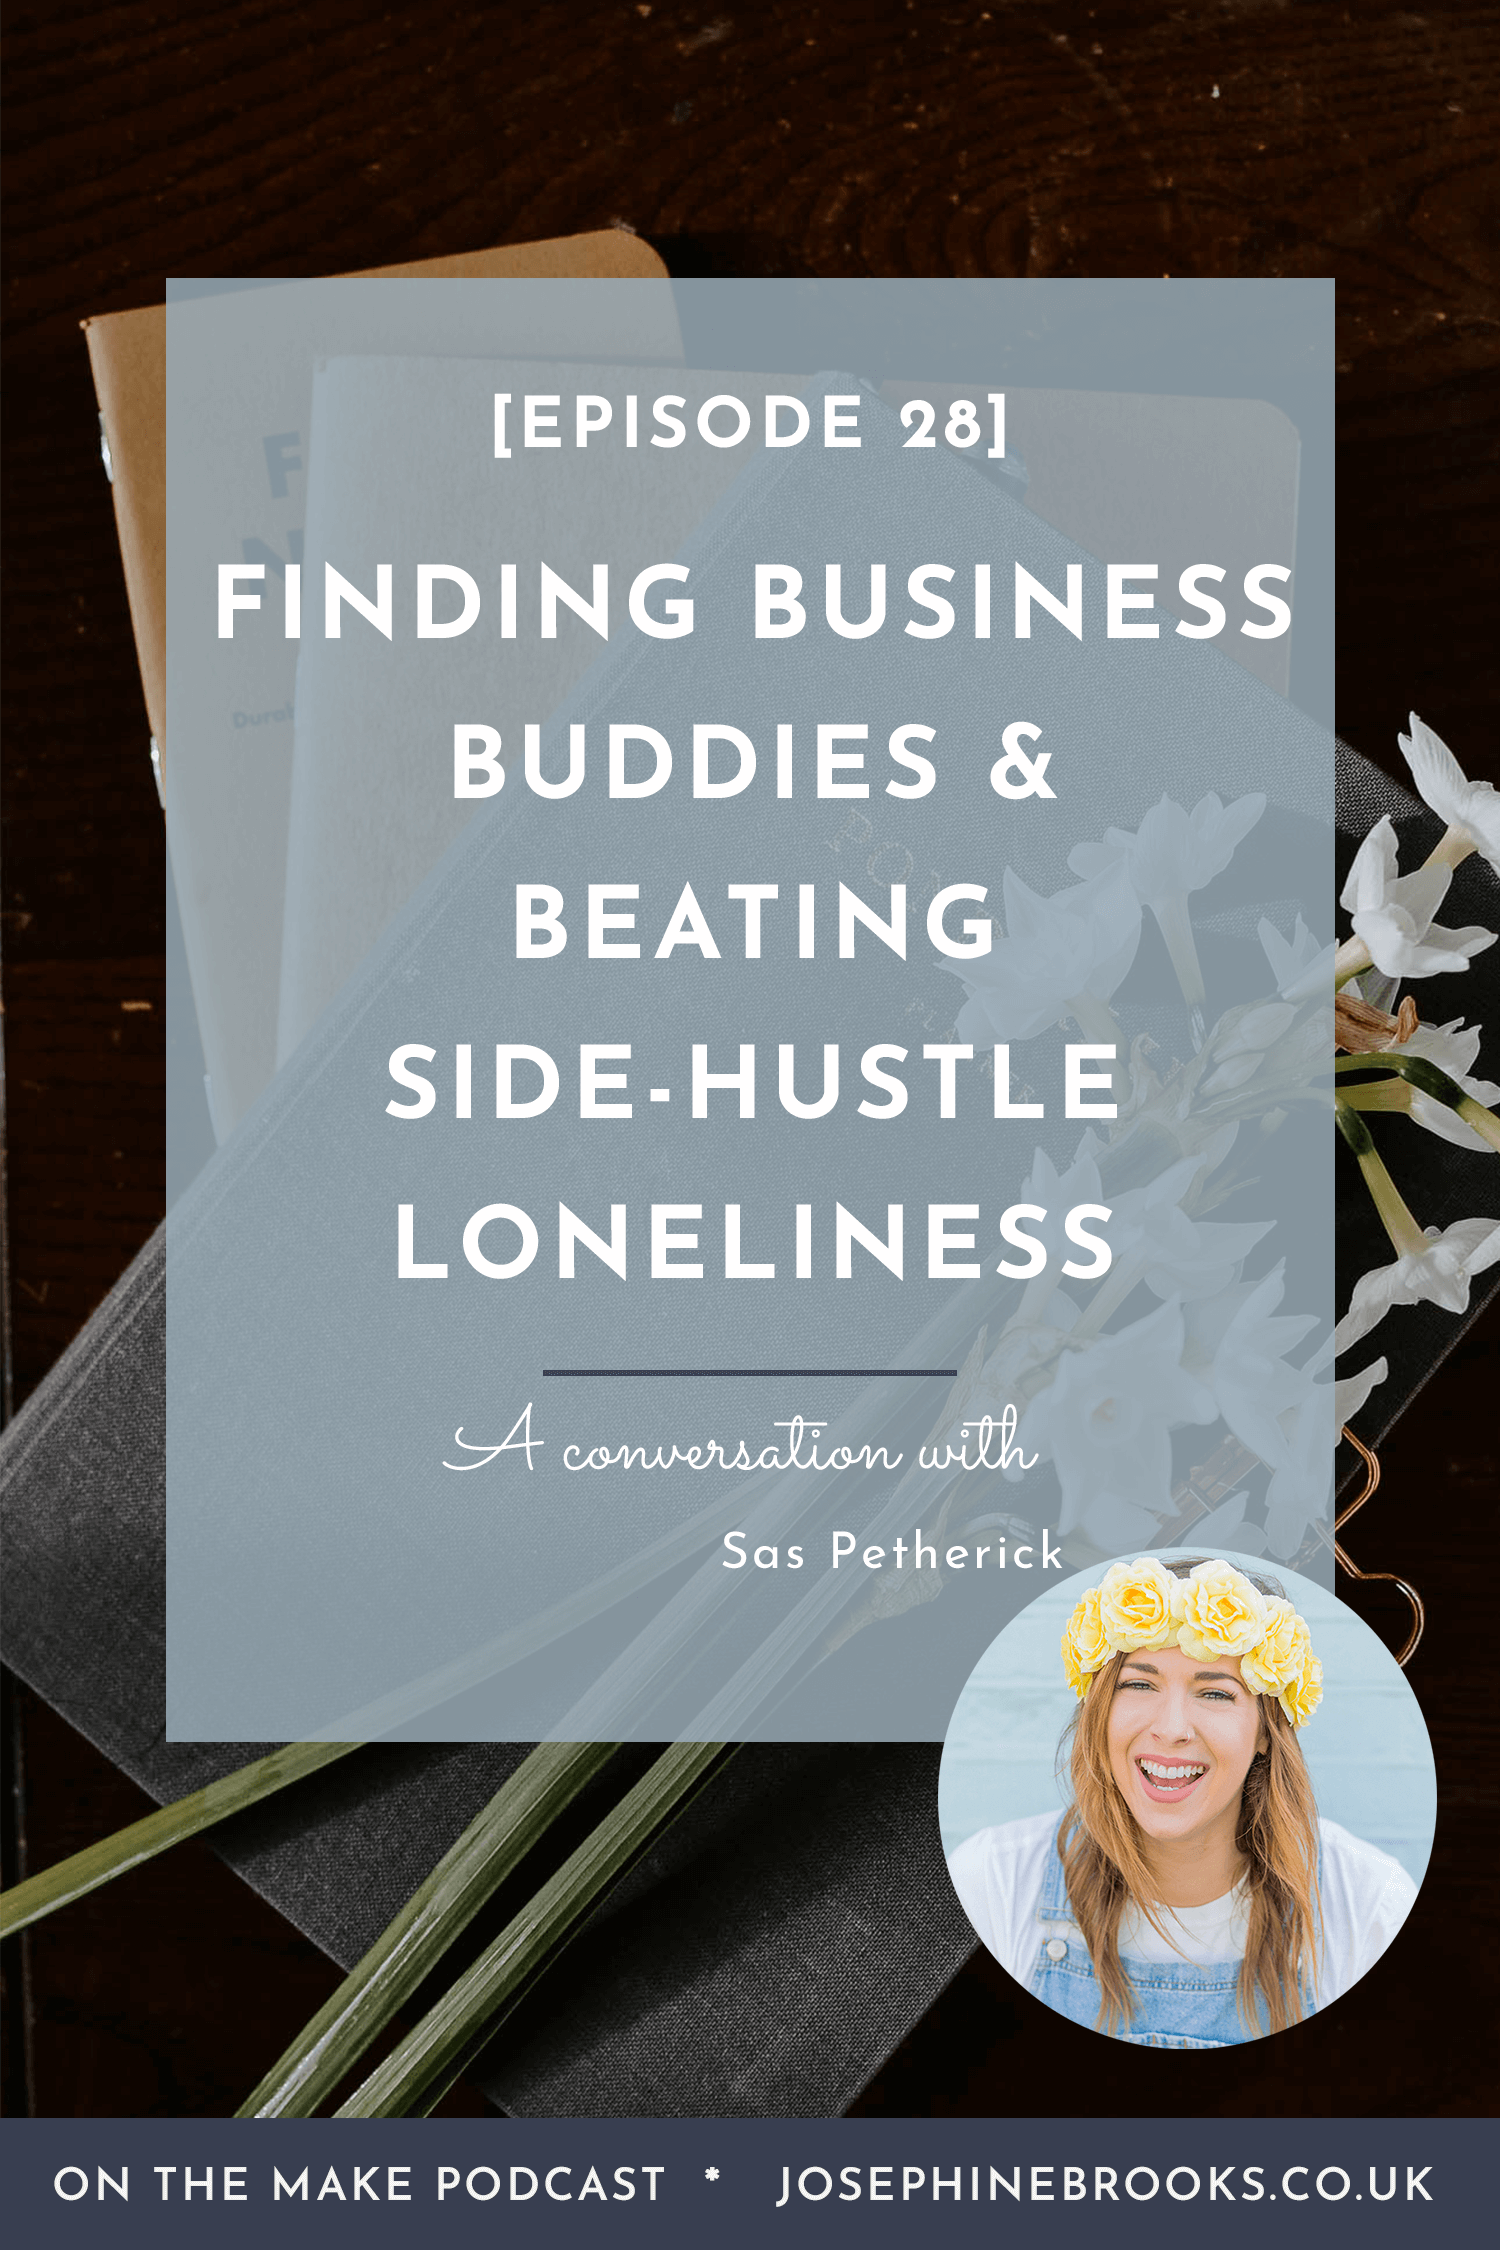 Finding Business Buddies and Beating Solo-Business-Owner Loneliness with Gemma Scopes - One The Make podcast episode 28 hosted by Josephine Brooks